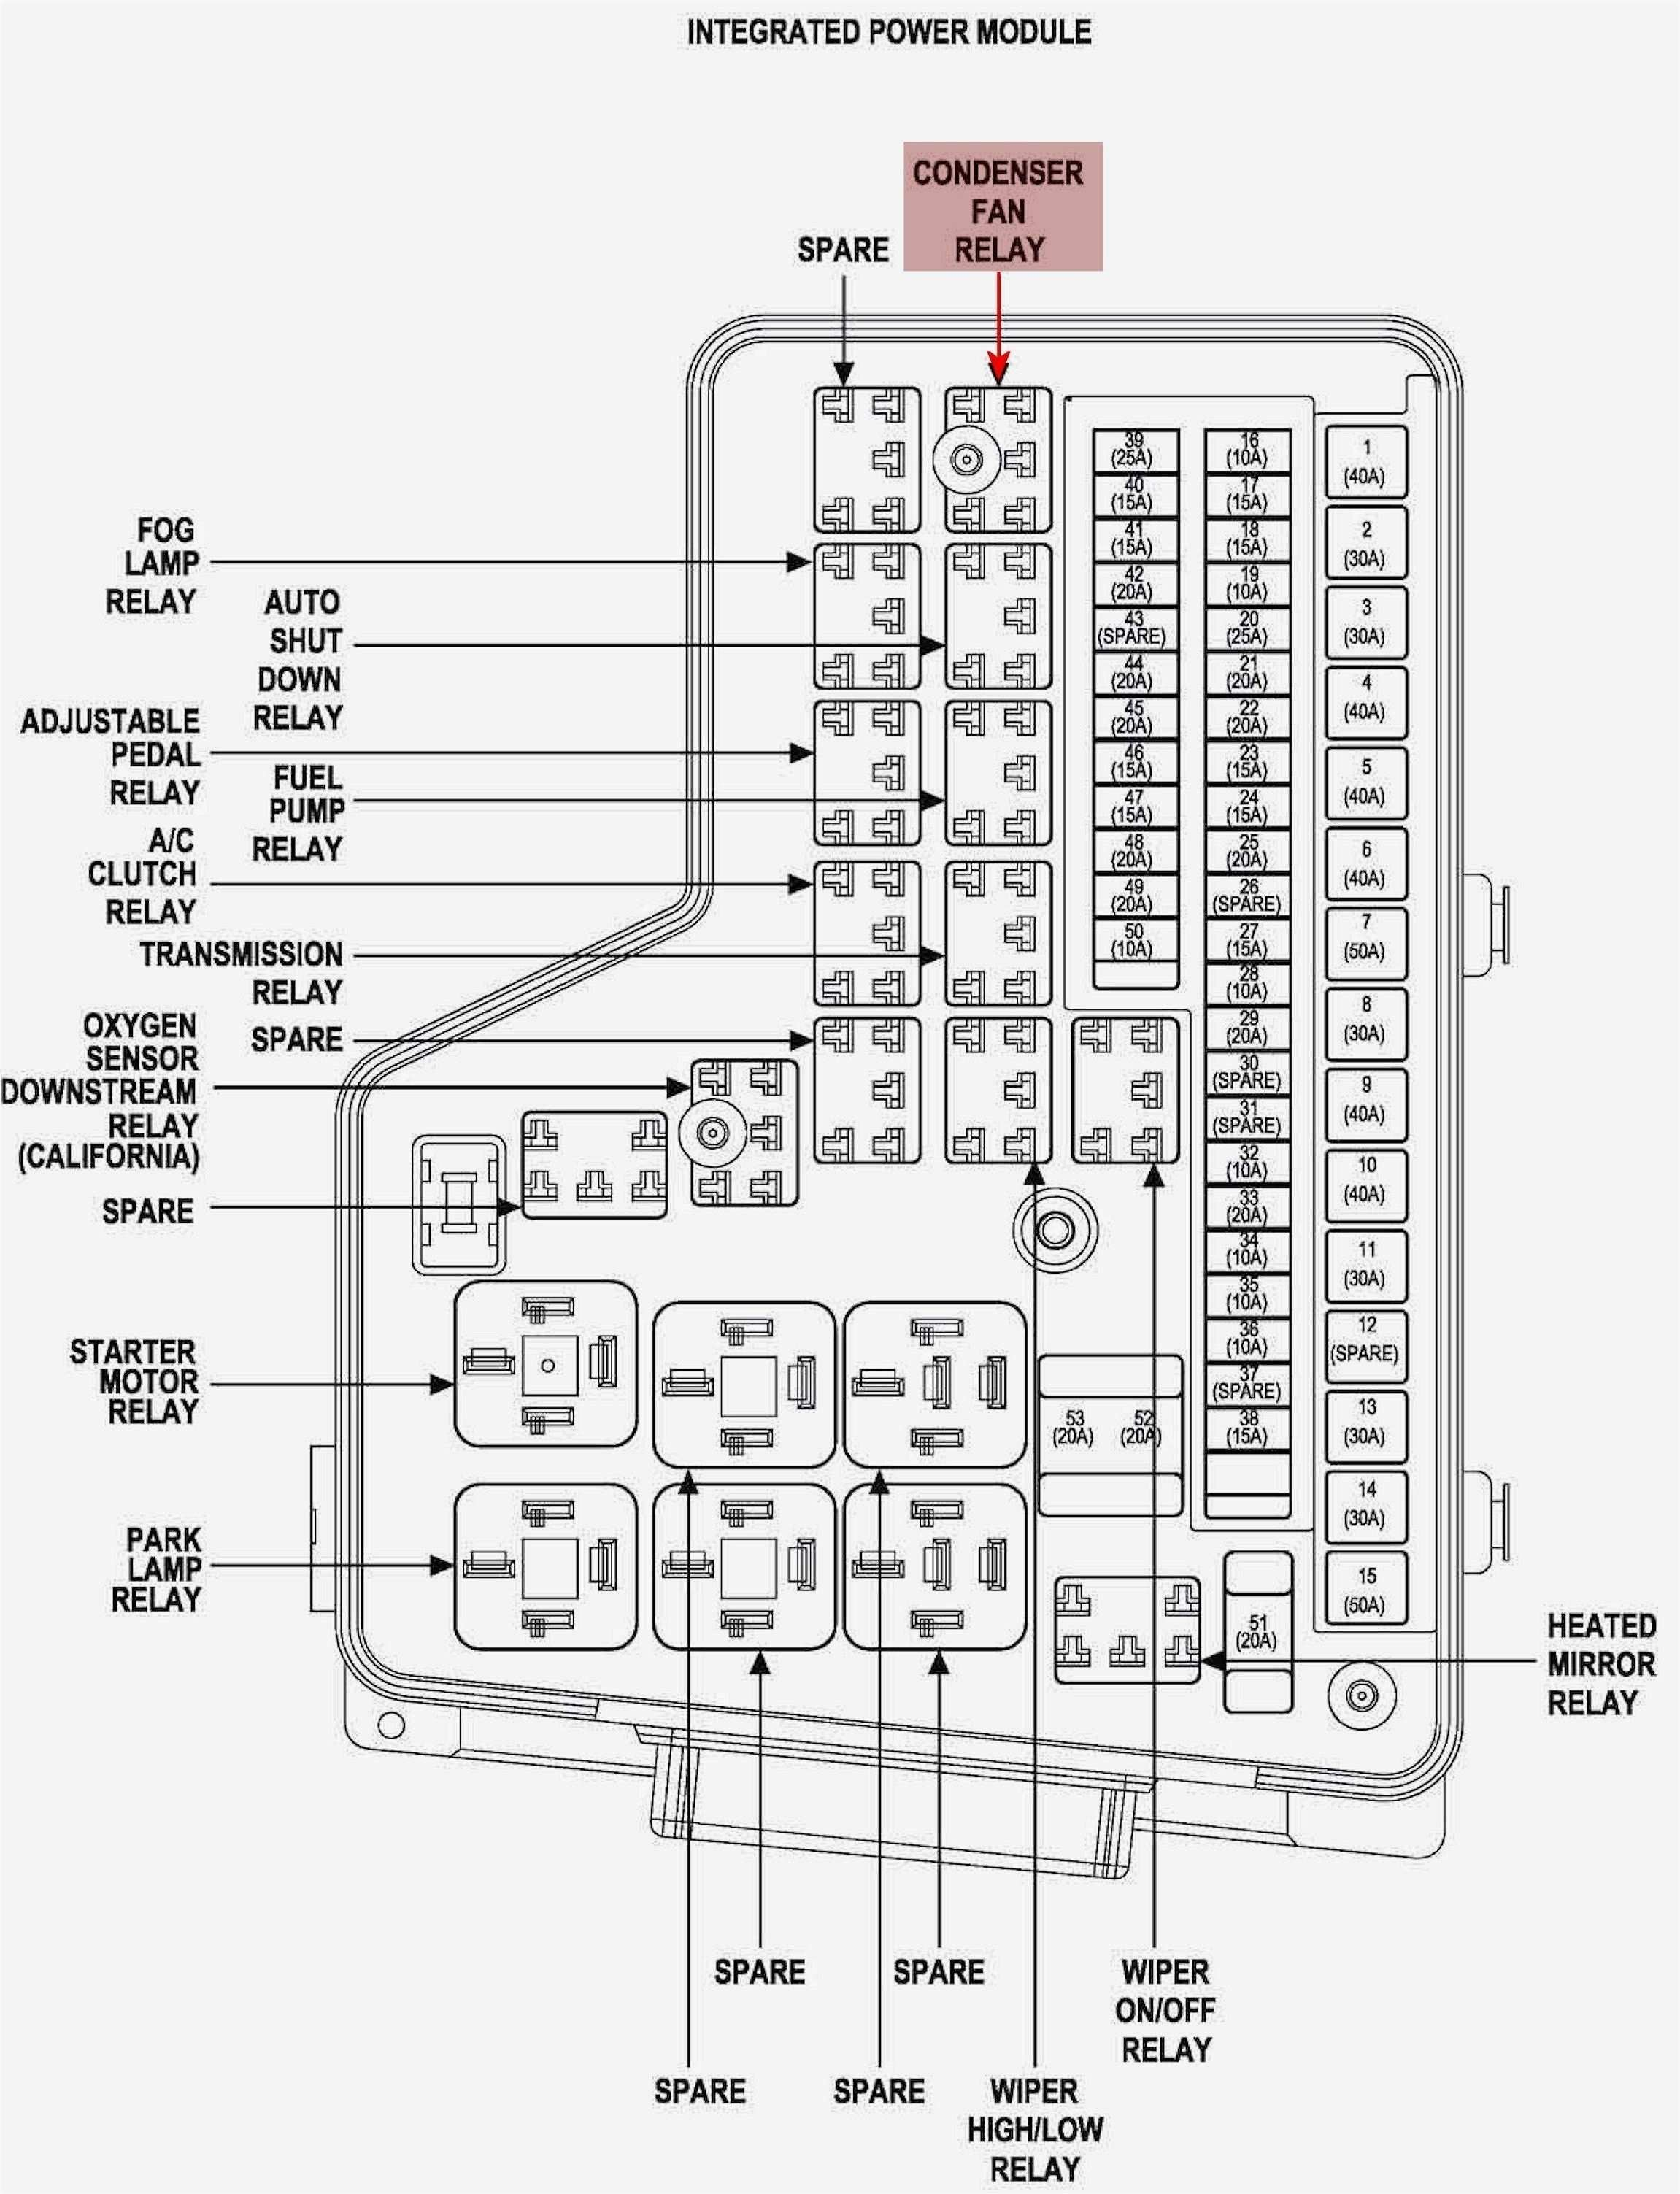 2001 Dodge Caravan Engine Diagram 1997 Dodge Caravan Wiring Diagram Wiring Diagram Database Of 2001 Dodge Caravan Engine Diagram